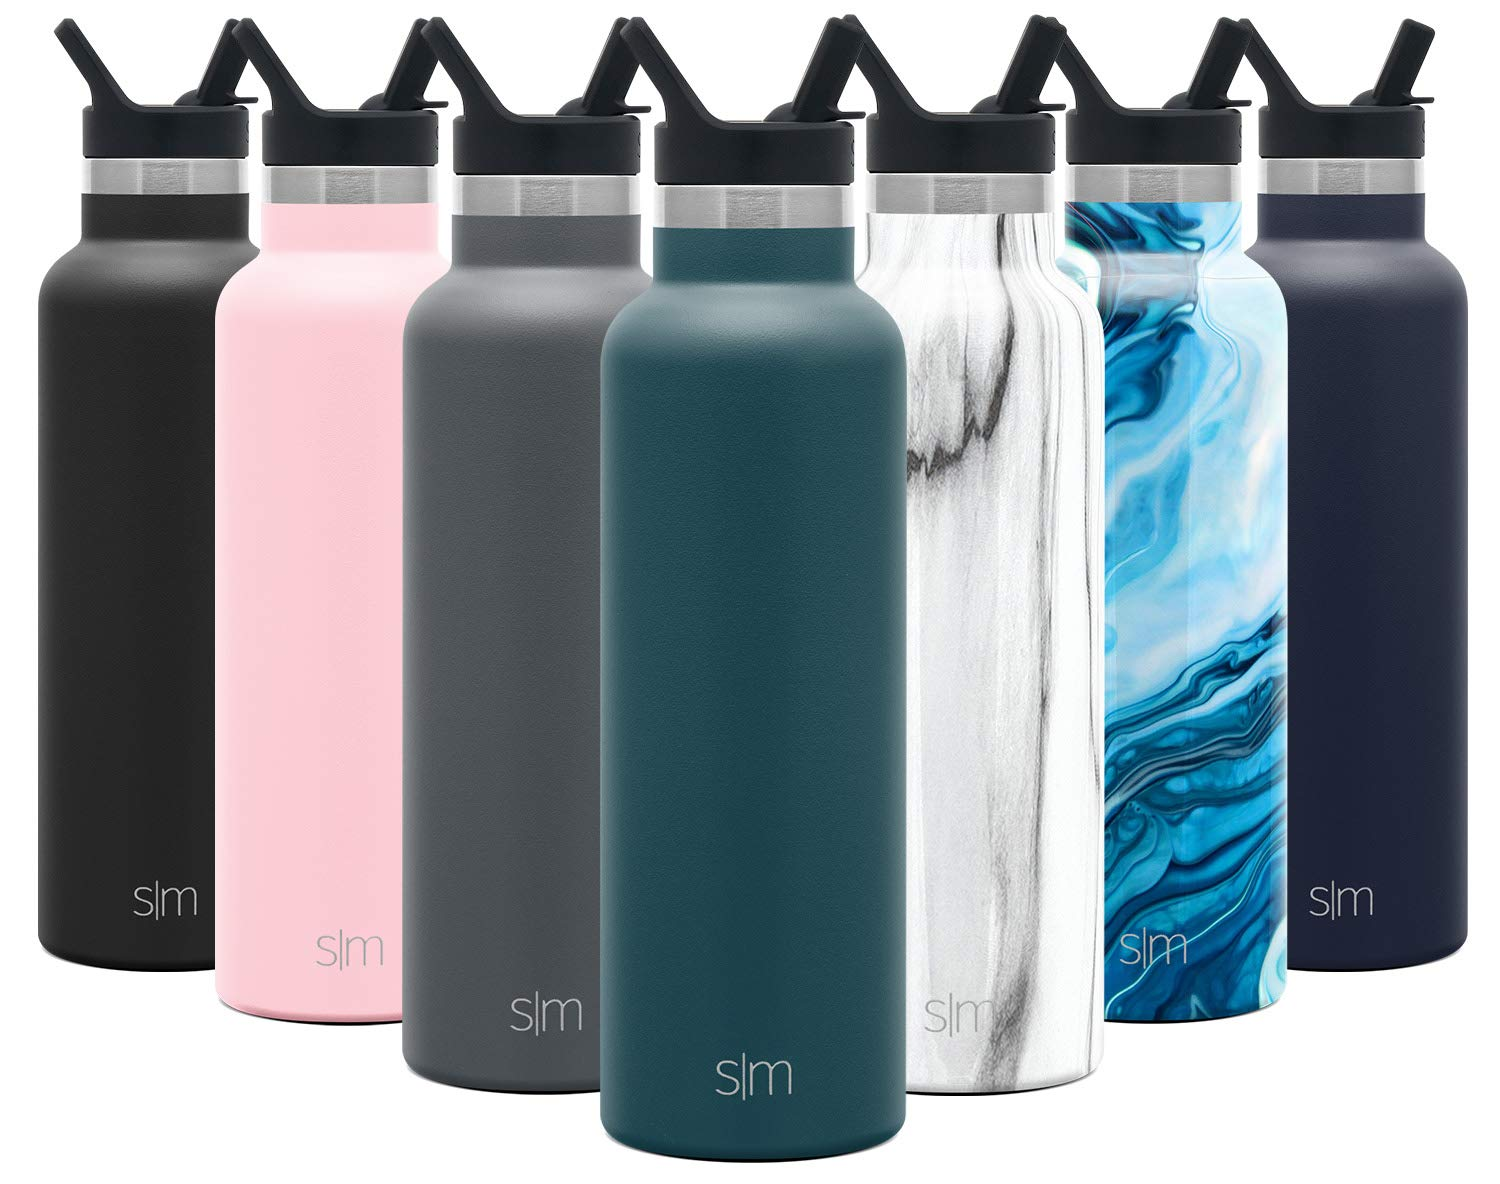 Simple Modern 20 Ounce Ascent Water Bottle with Straw Lid - Stainless Steel Hydro Thermos Tumbler - Double Wall Vacuum Insulated Reusable Metal Leakproof -Riptide